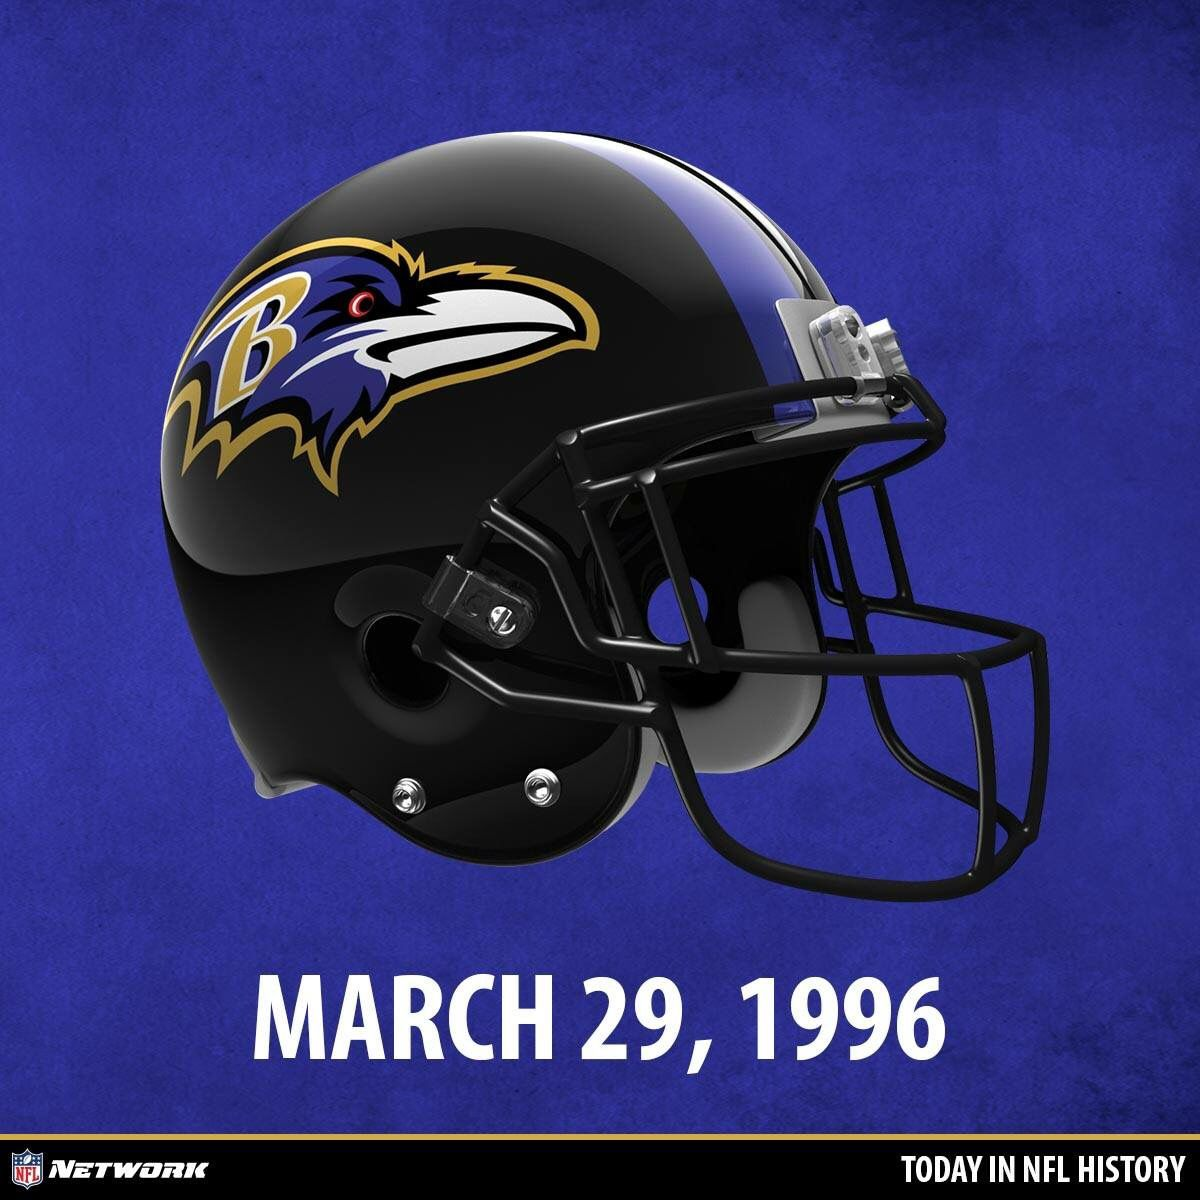 20 years ago today, the Baltimore Ravens were born